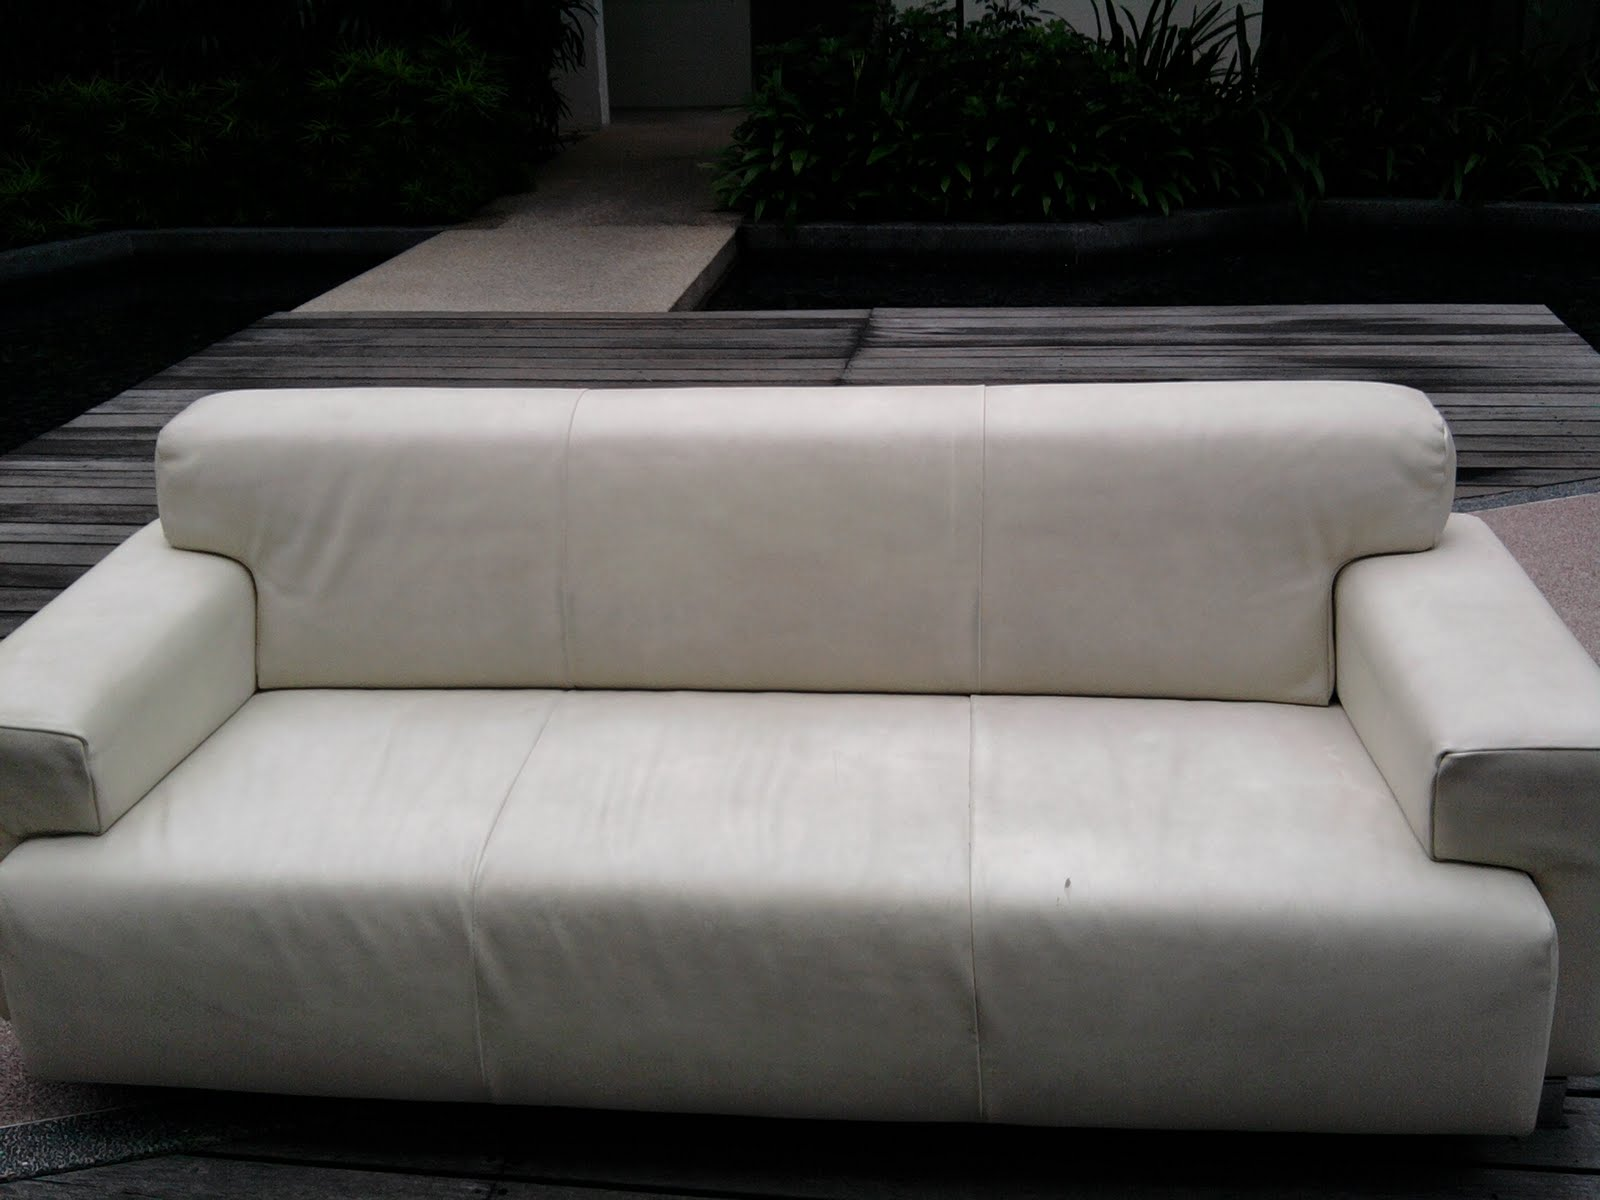 Semi Circle Sofa For Bay Window Couch Or Divan Kia Meng Trading Products And Services